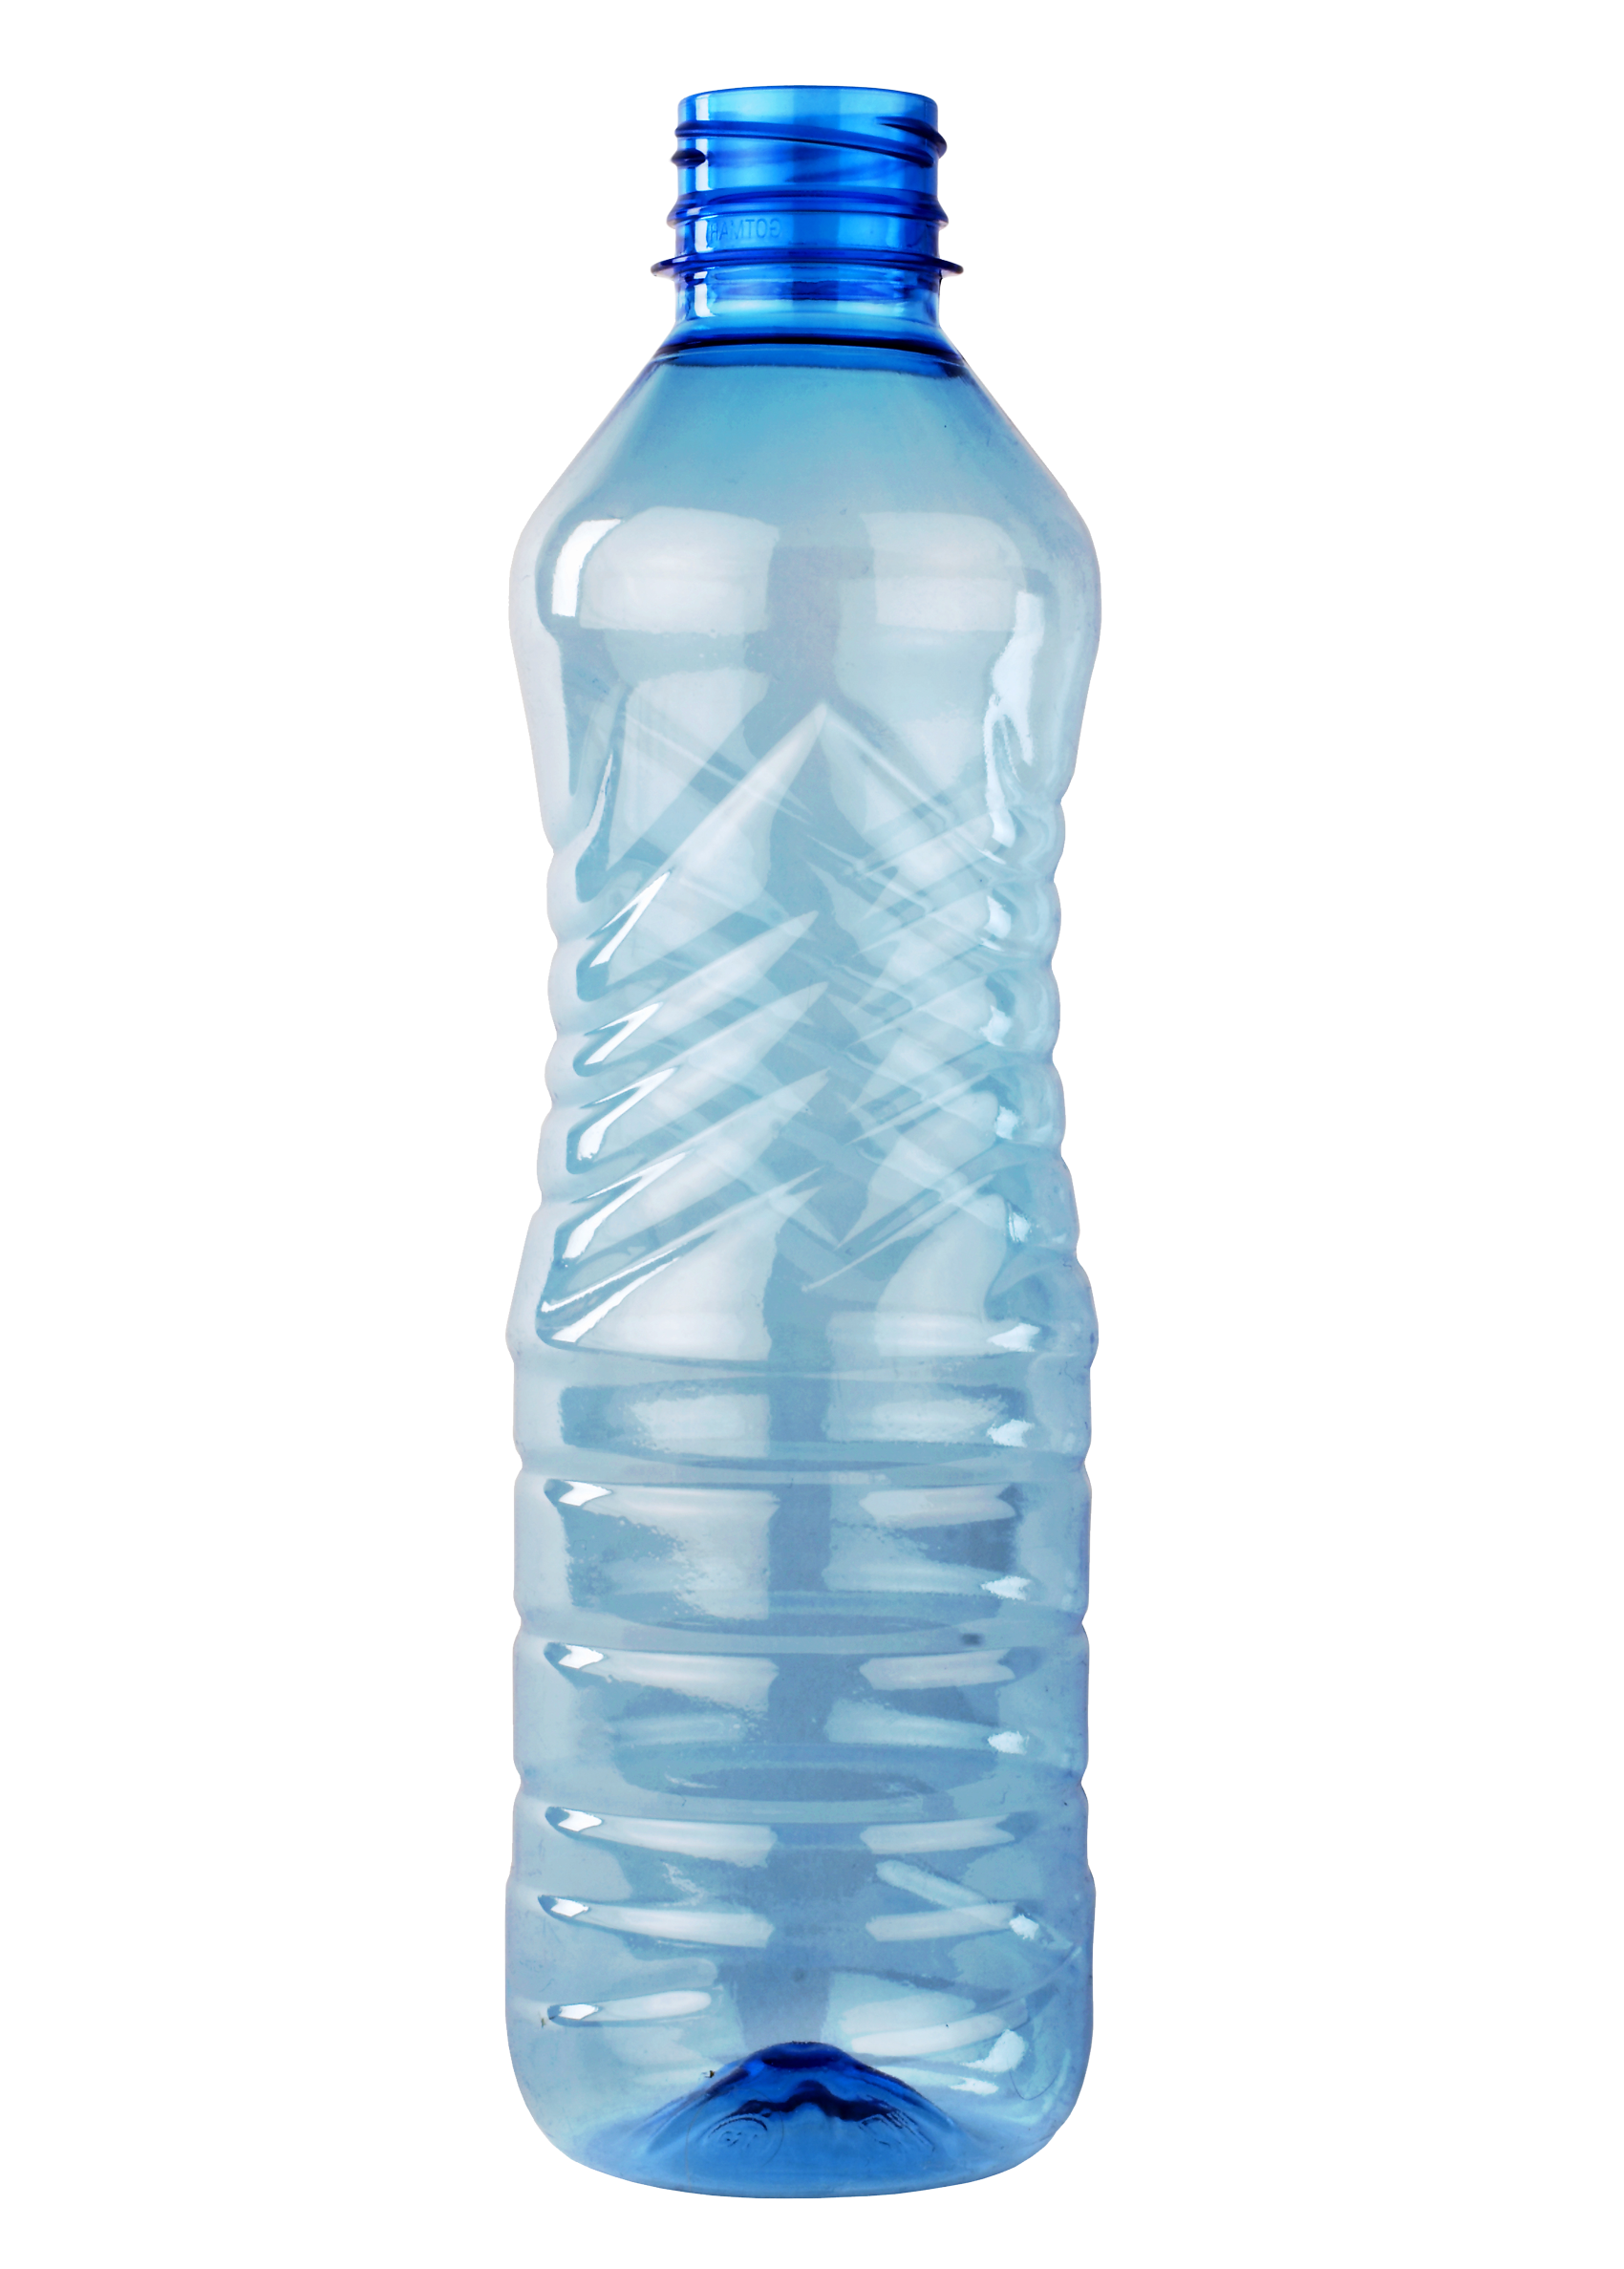 Png Water Bottle Vector image #39990